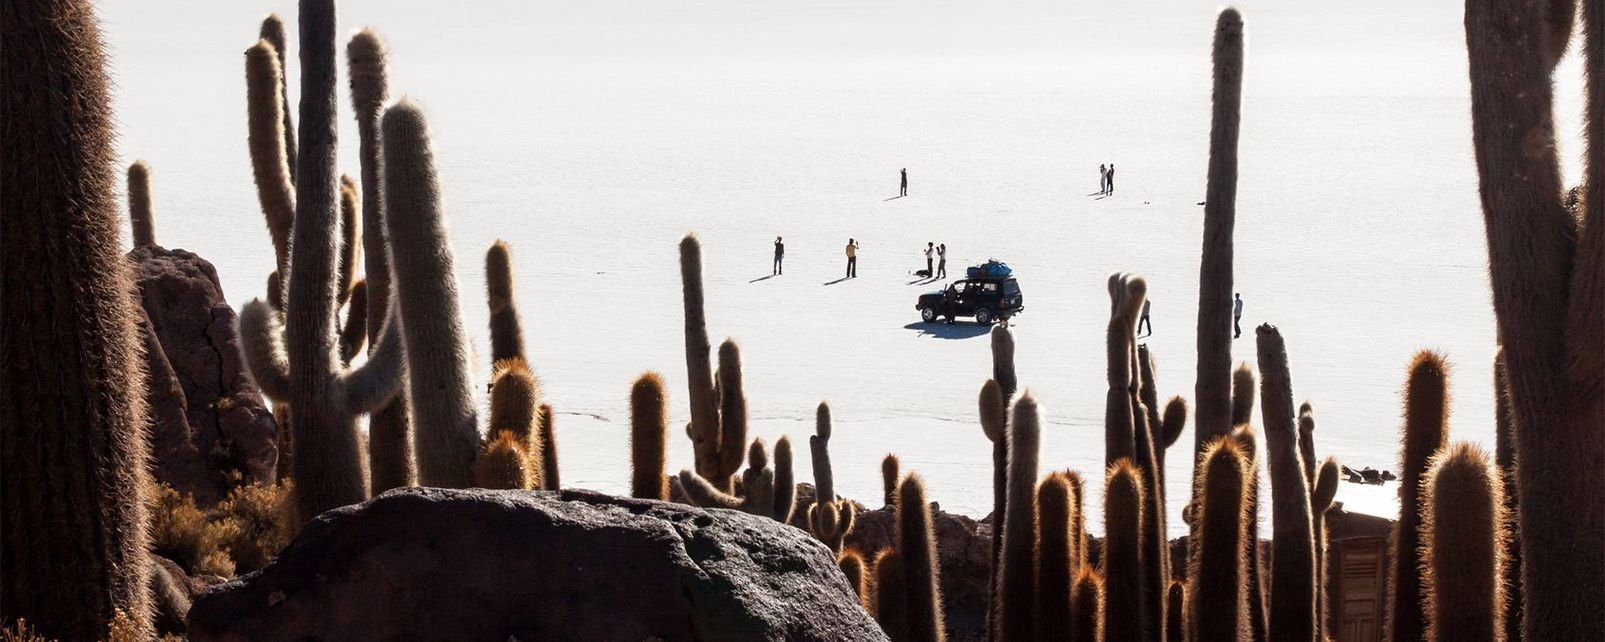 The Uyuni Salt Pan , Bolivia